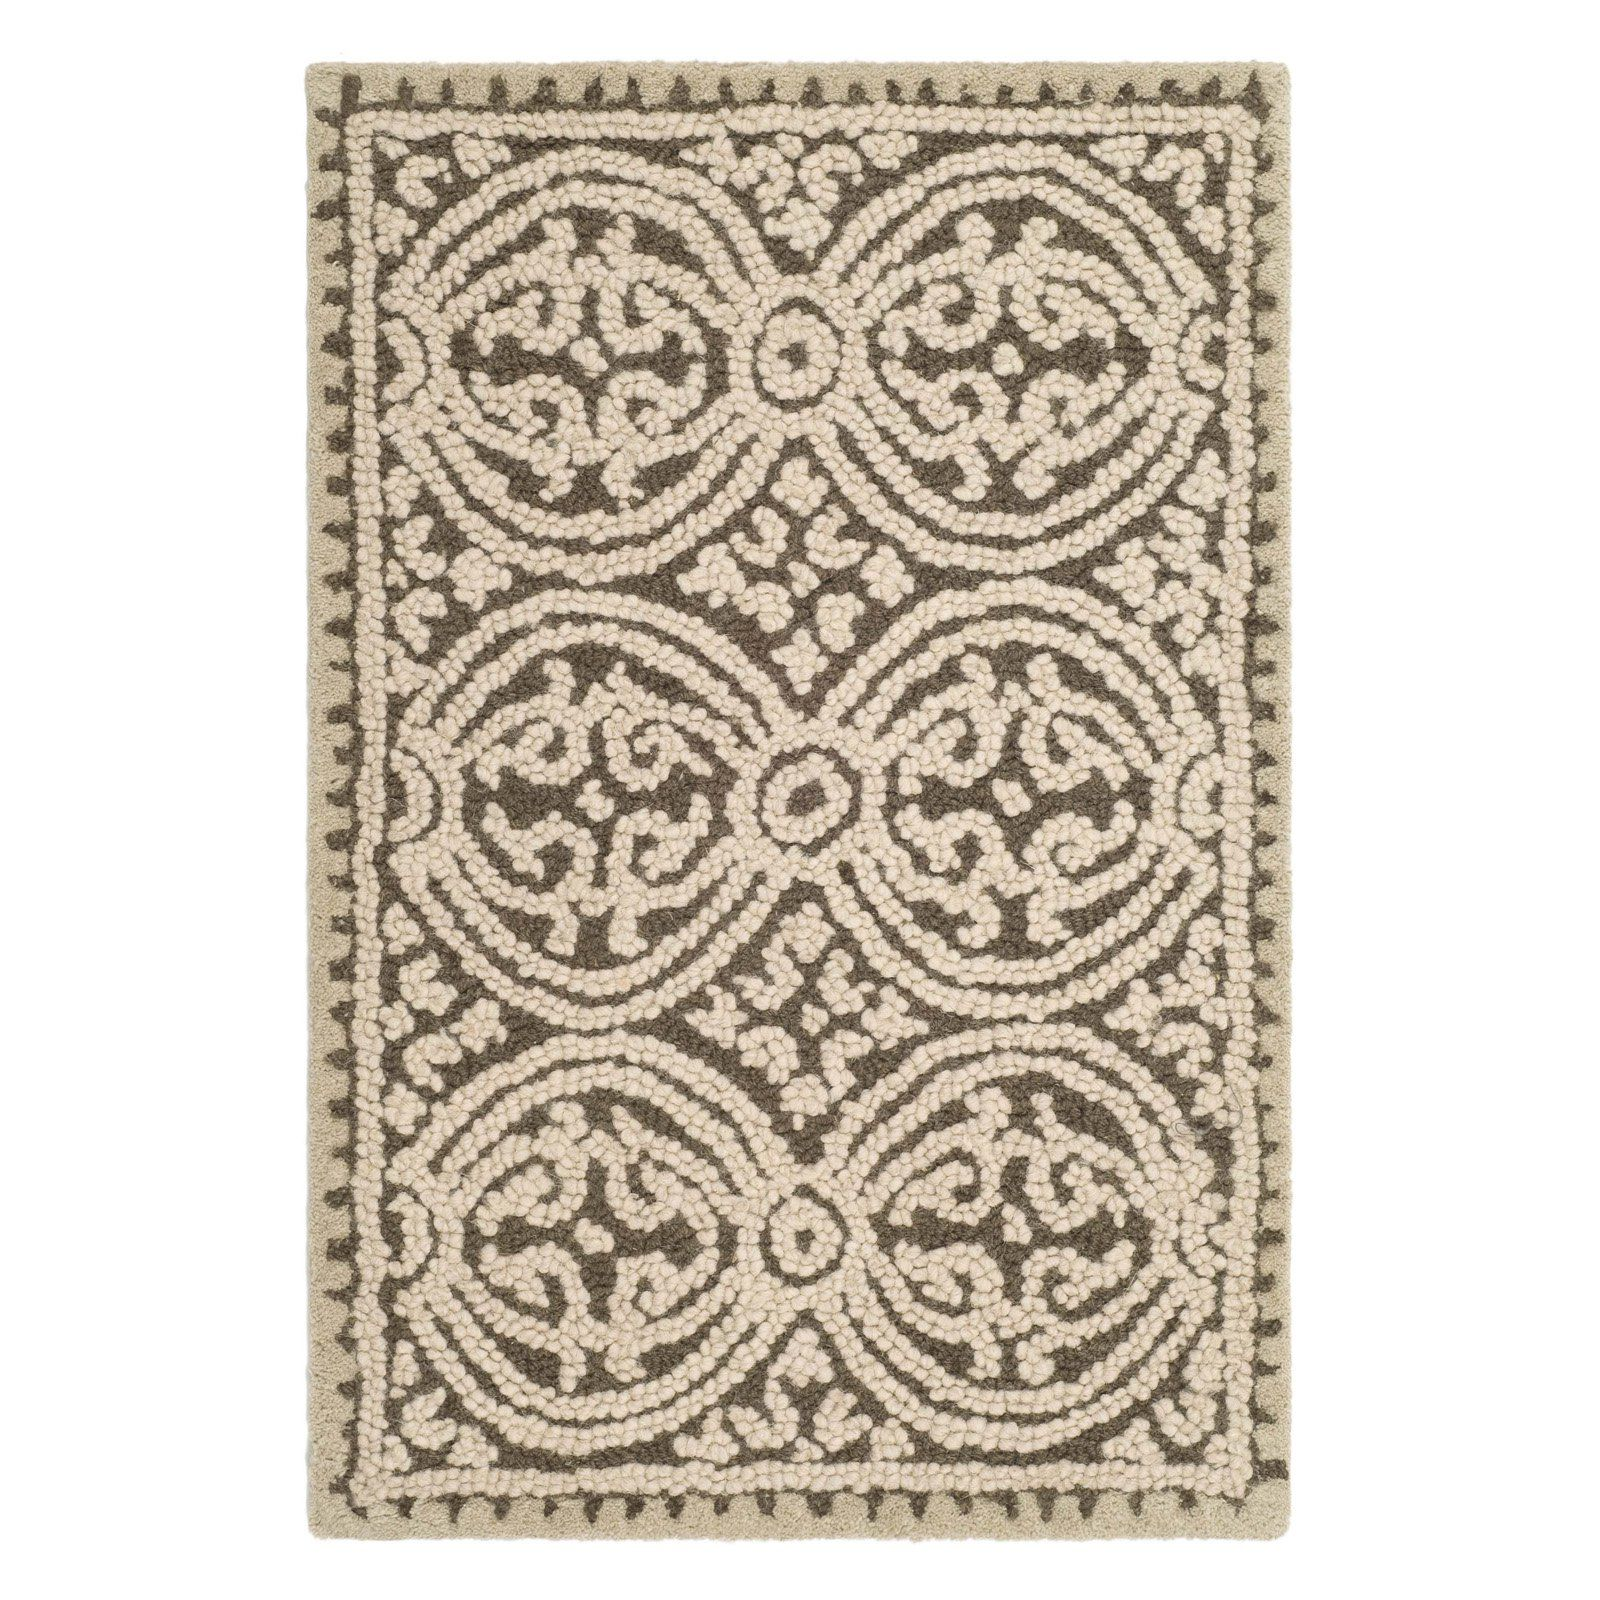 Safavieh Cambridge CAM232A Area Rug - Brown/White